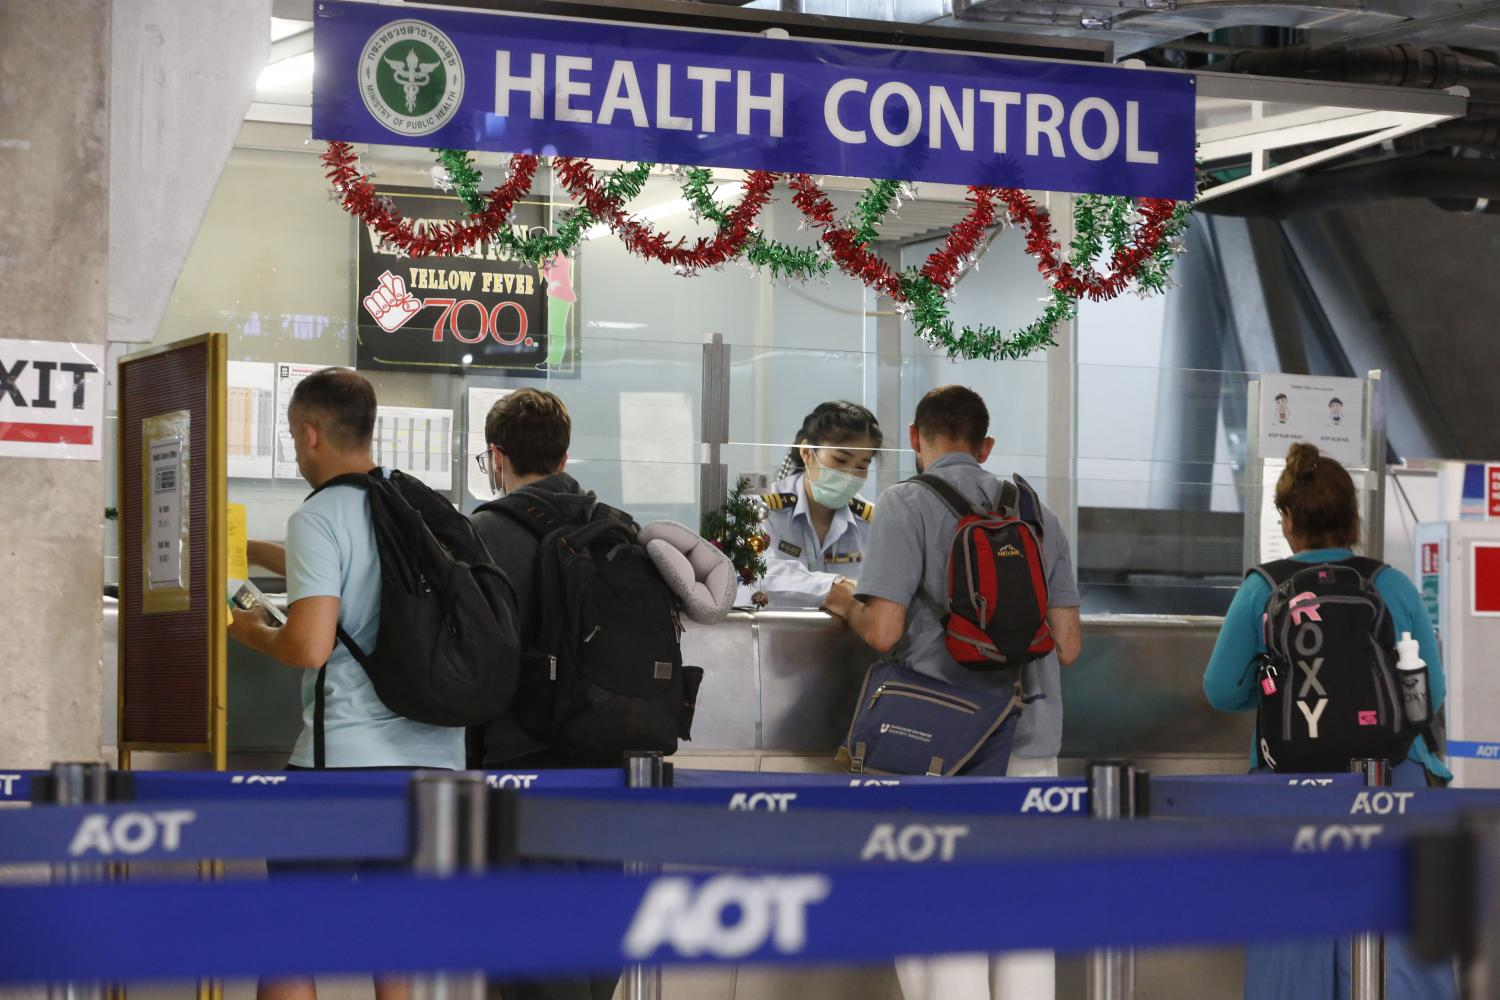 Tourists have to provide a health certificate and strictly comply with screenings and measures from Thai health authorities to gain entry.(Photo by Pornprom Satrabhaya)